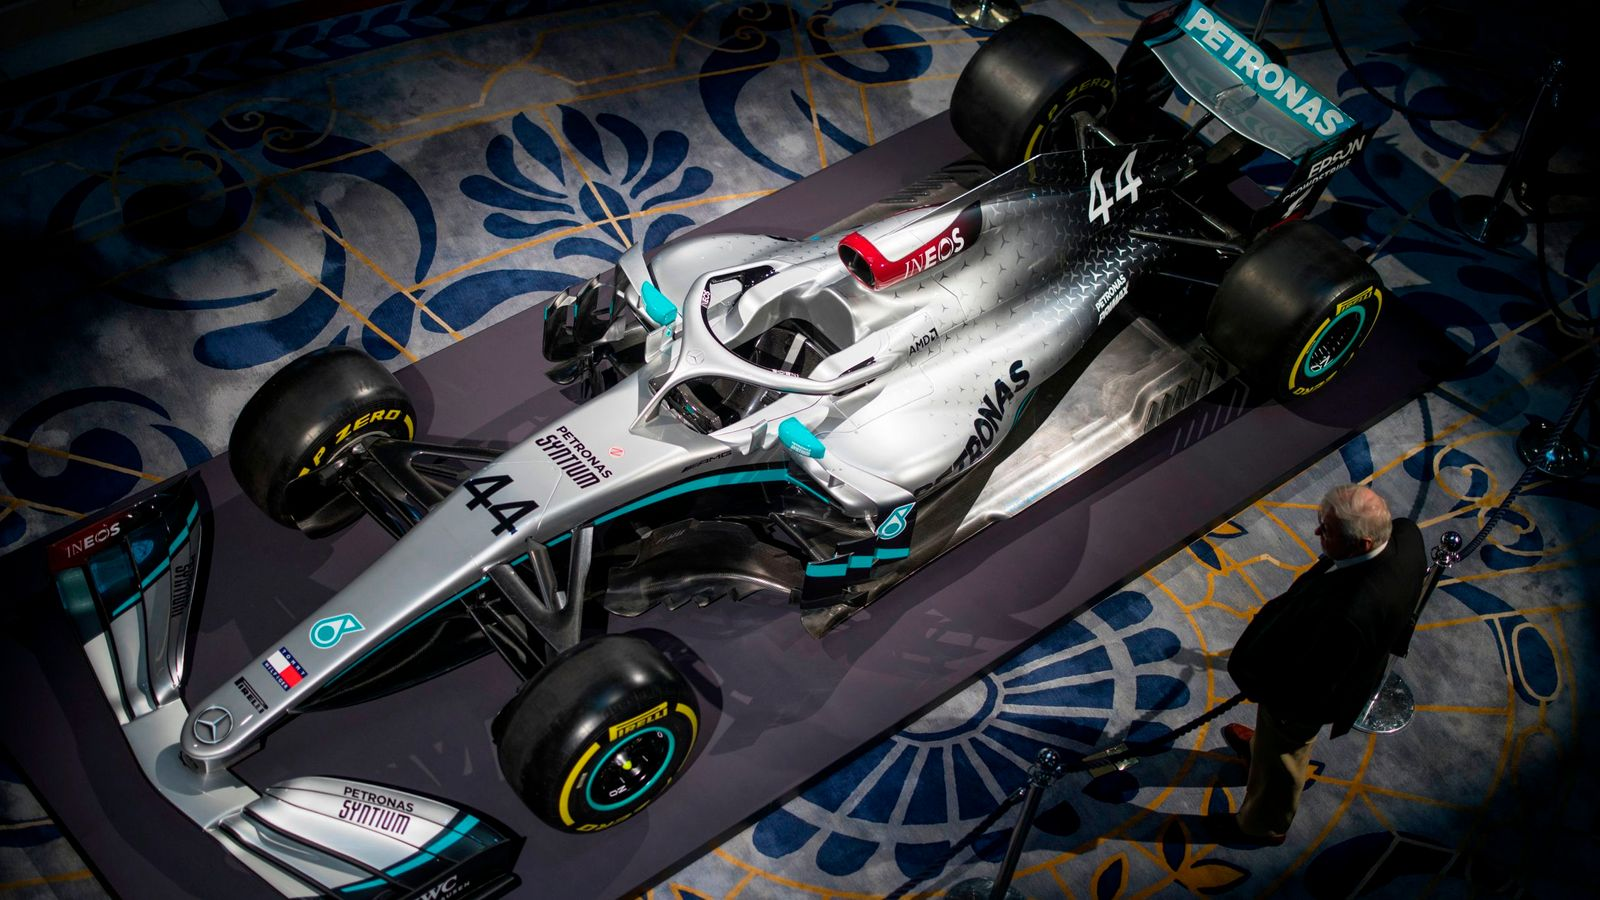 Mercedes reveal new livery for F1 2020 as they add red to Silver